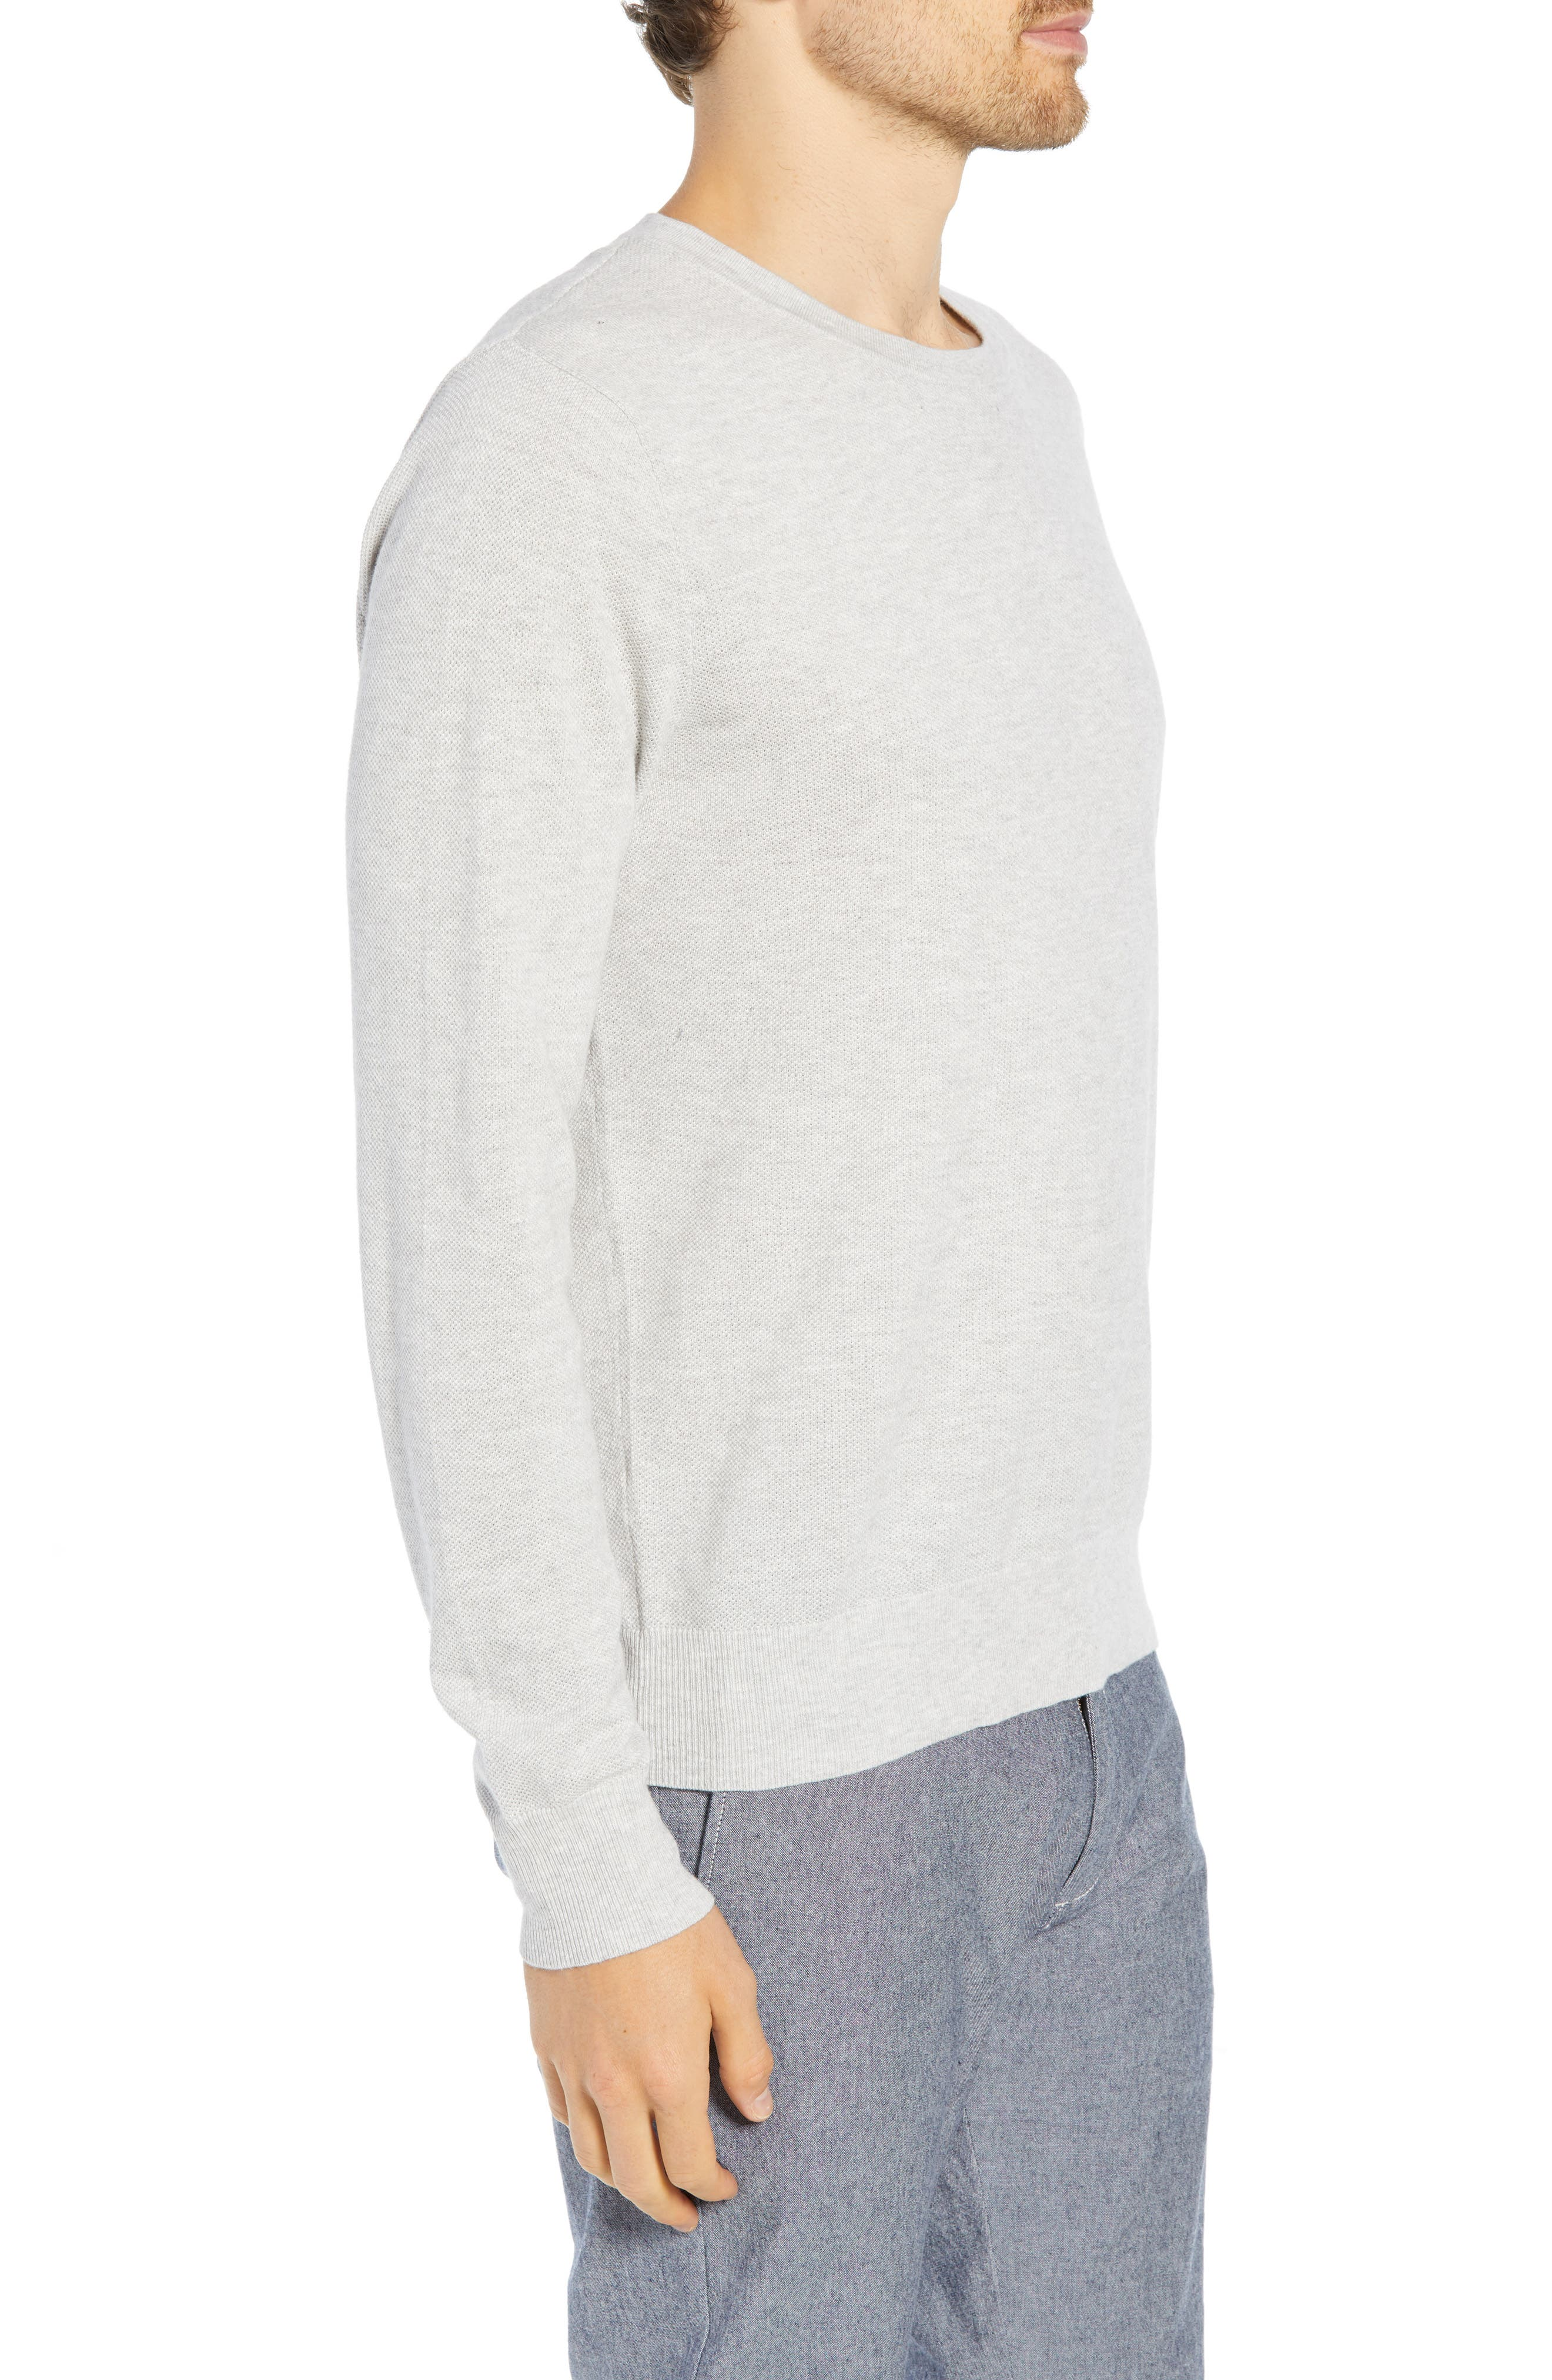 Cotton & Cashmere Piqué Crewneck Sweater,                             Alternate thumbnail 3, color,                             HEATHER SILVER